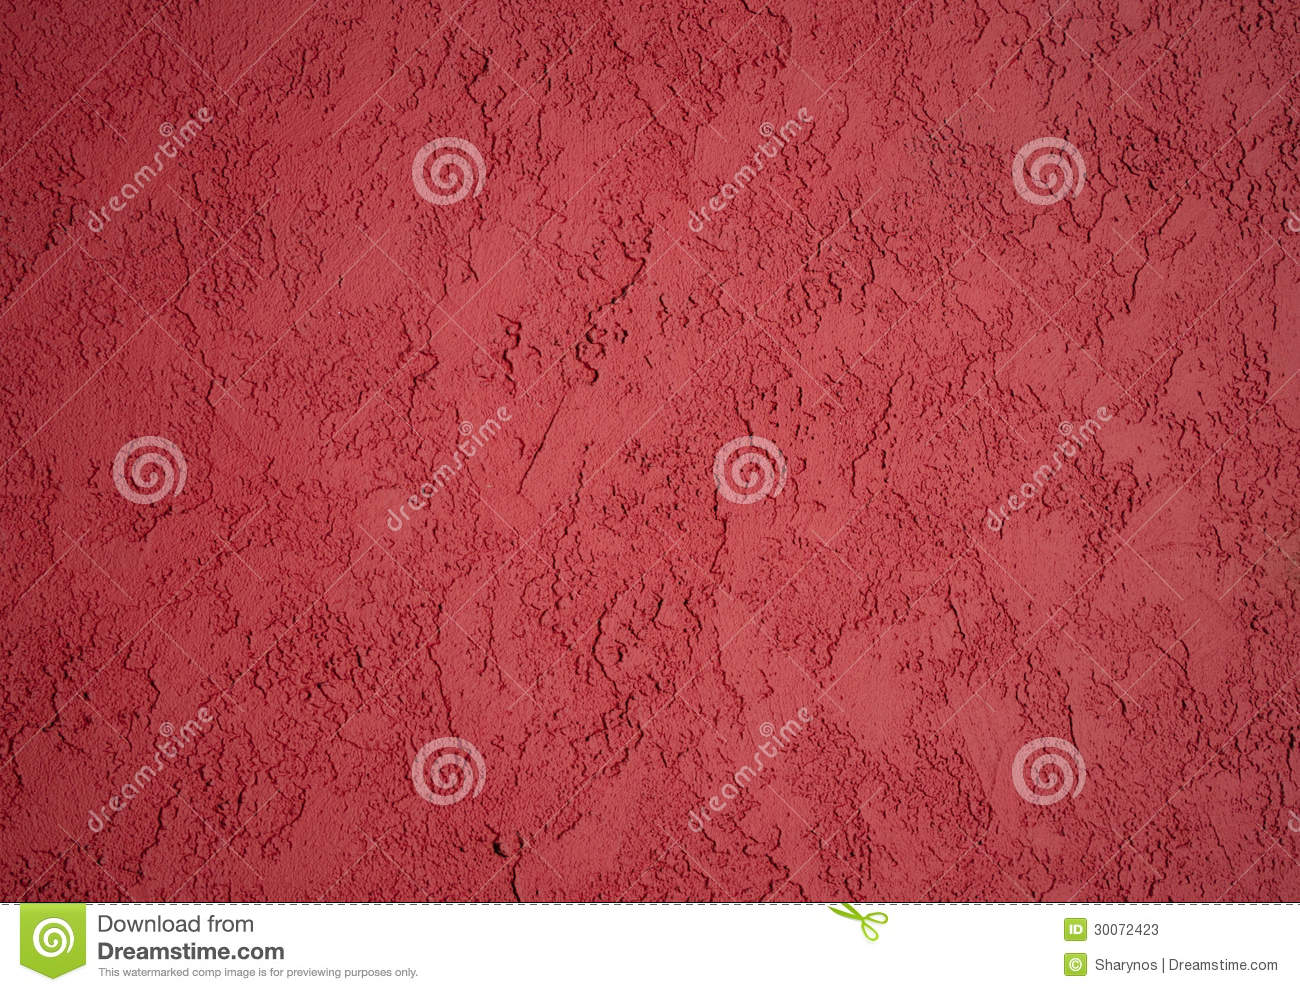 Textured red paint